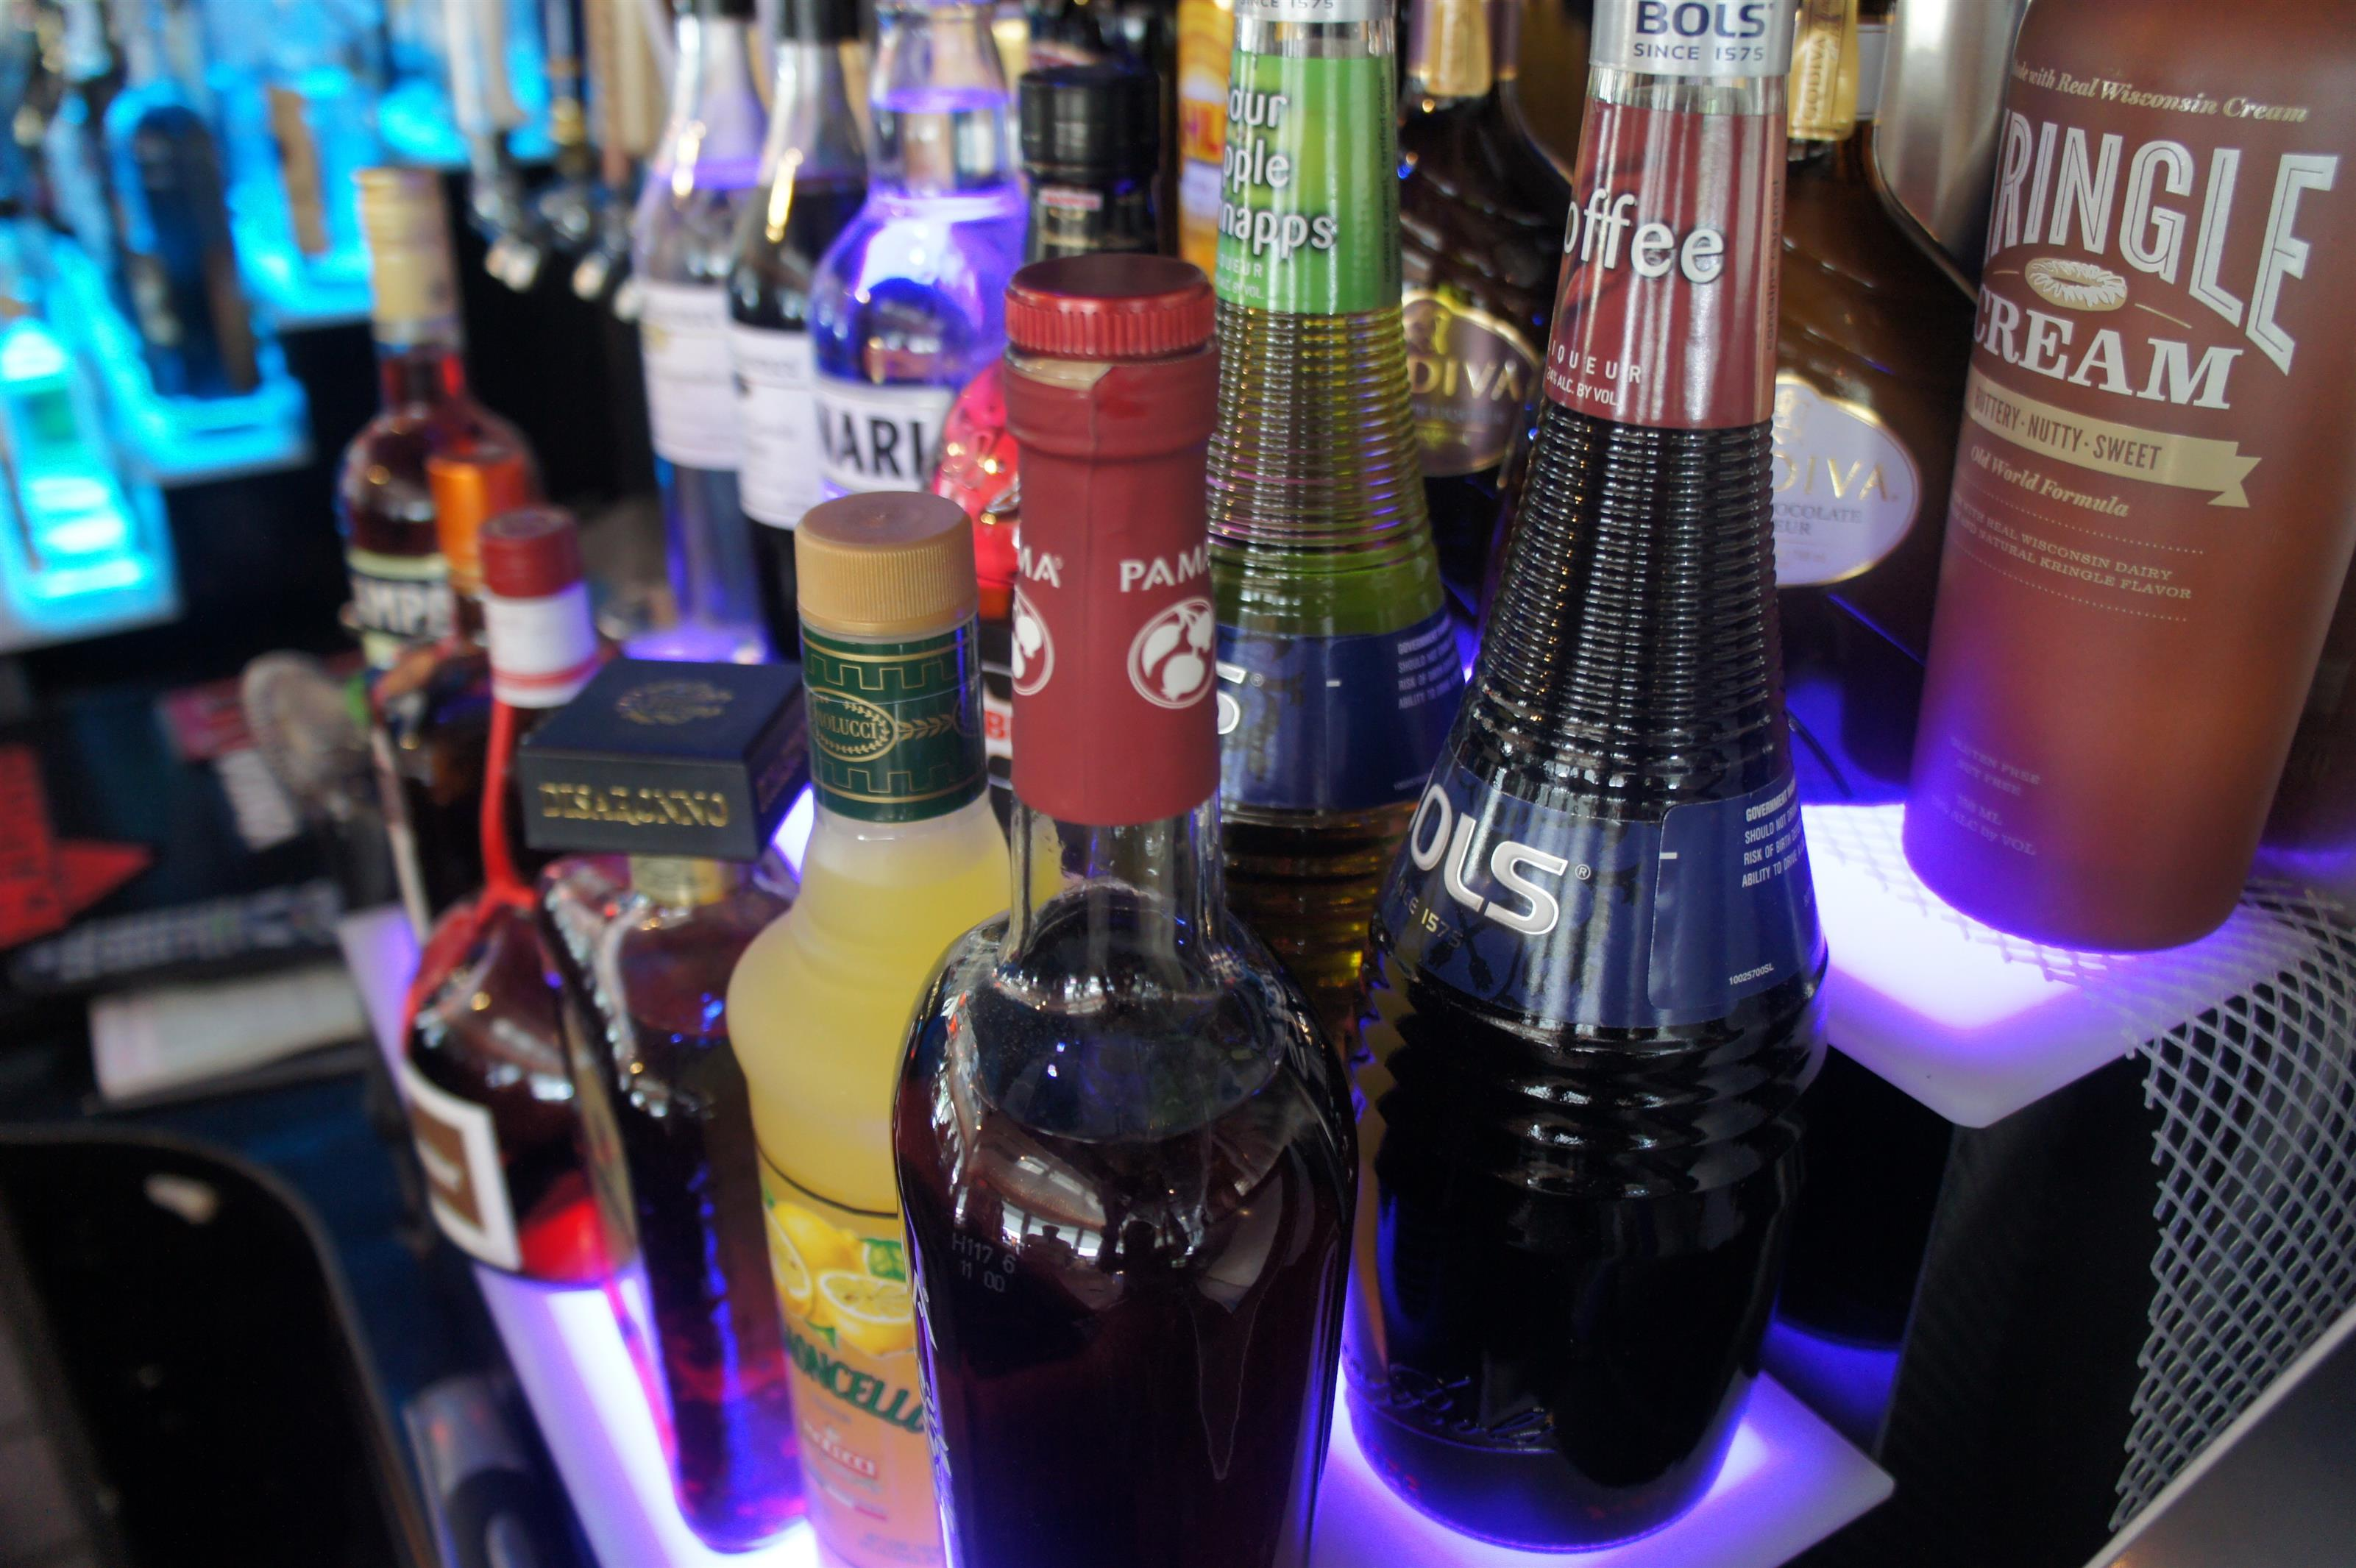 Colorful bottles of drinks in display at the bar